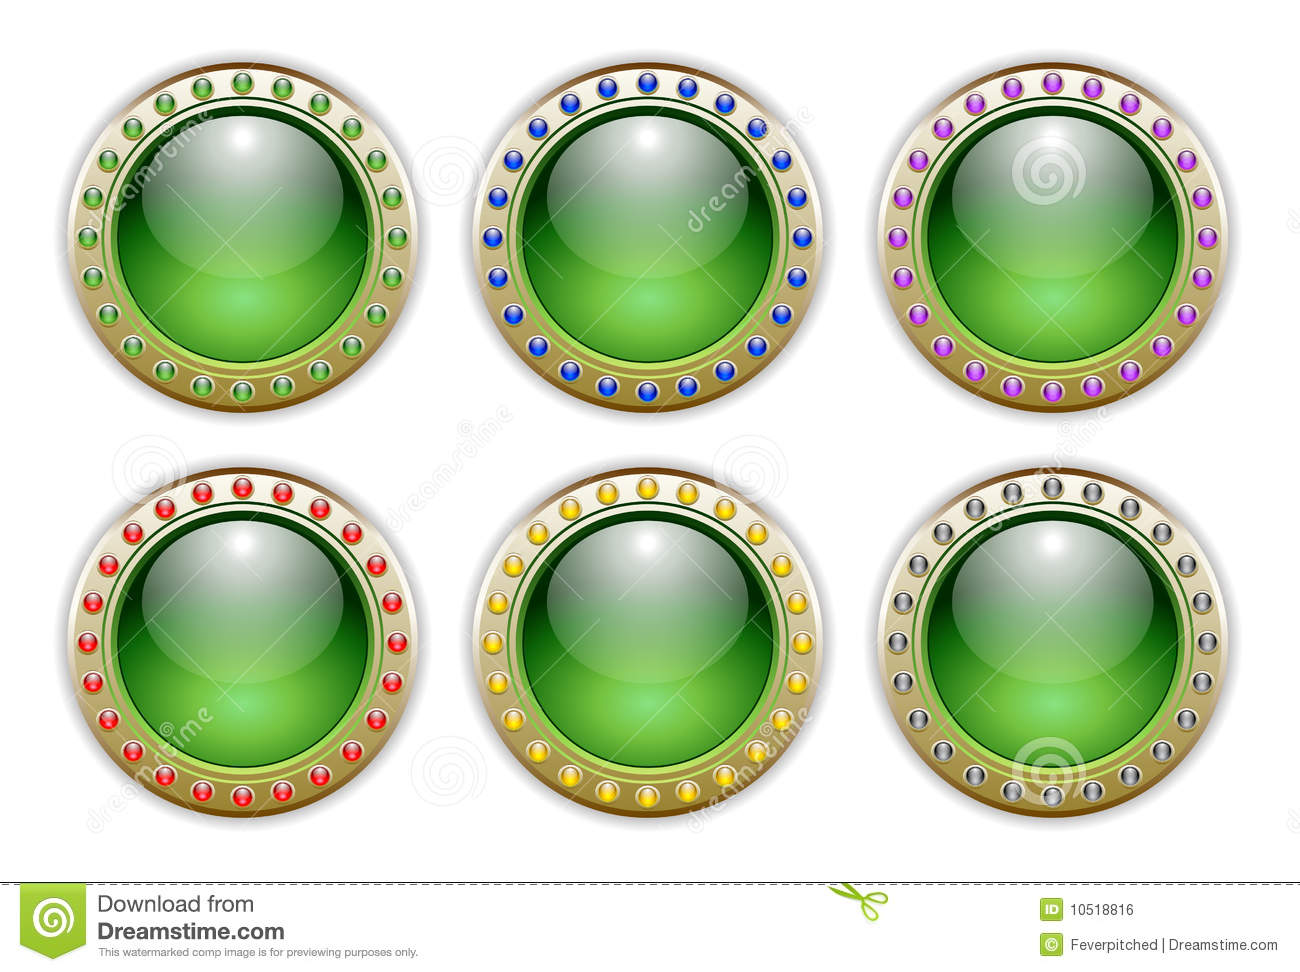 Green Set of 6 Color Combinations Glossy Buttons